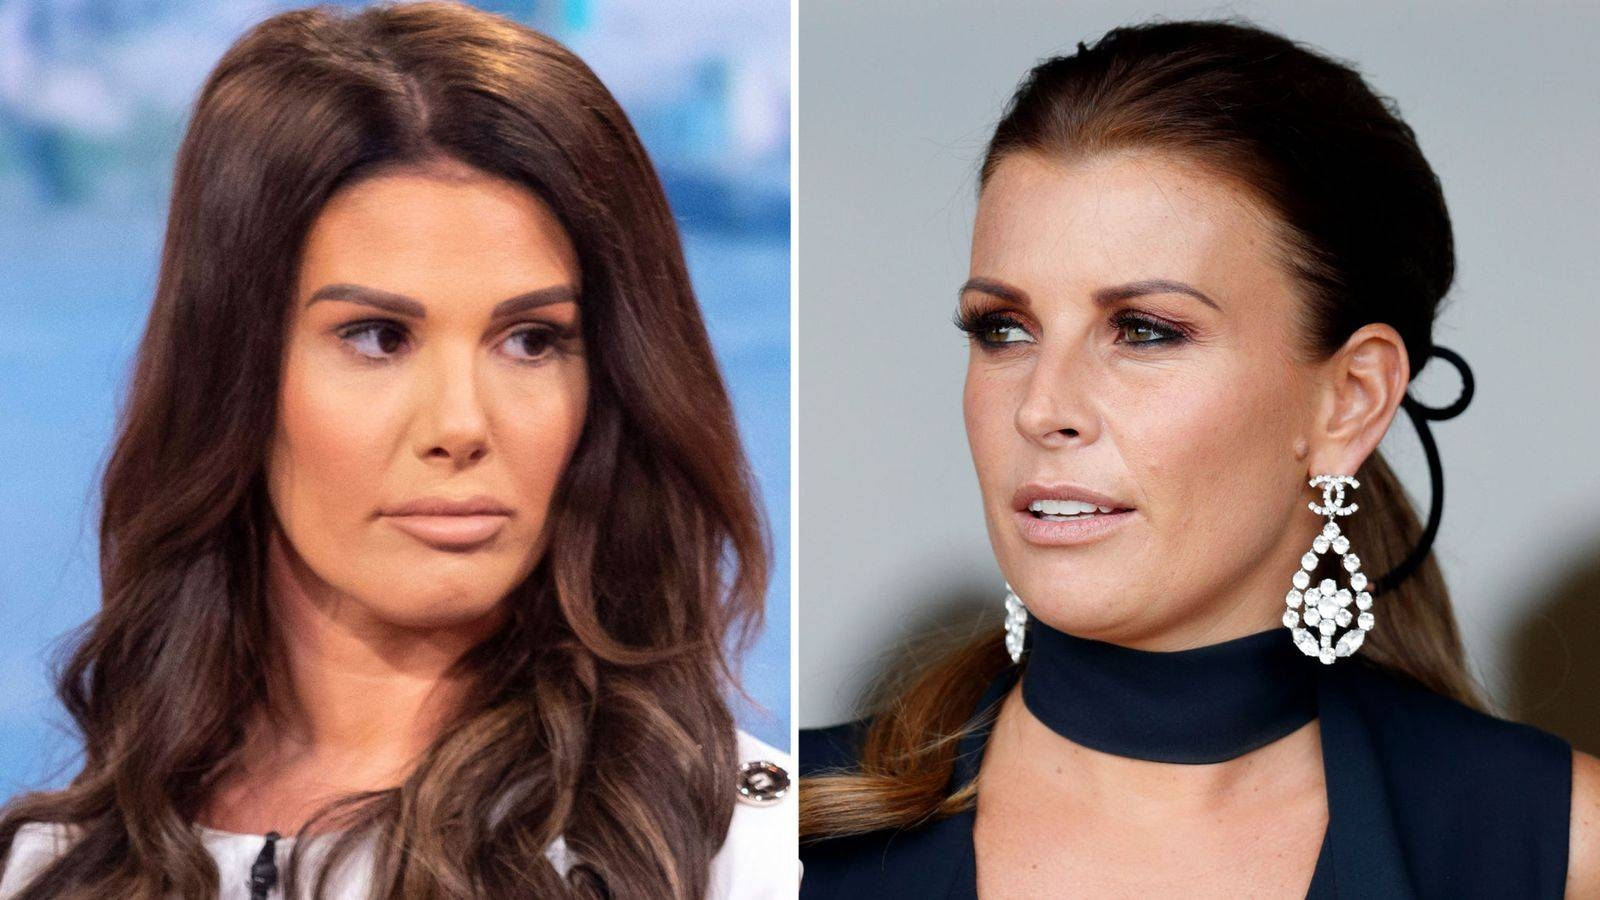 Coleen Rooney, right, and Rebekah Vardy, left, are seen in this file combination picture. — Courtesy photo